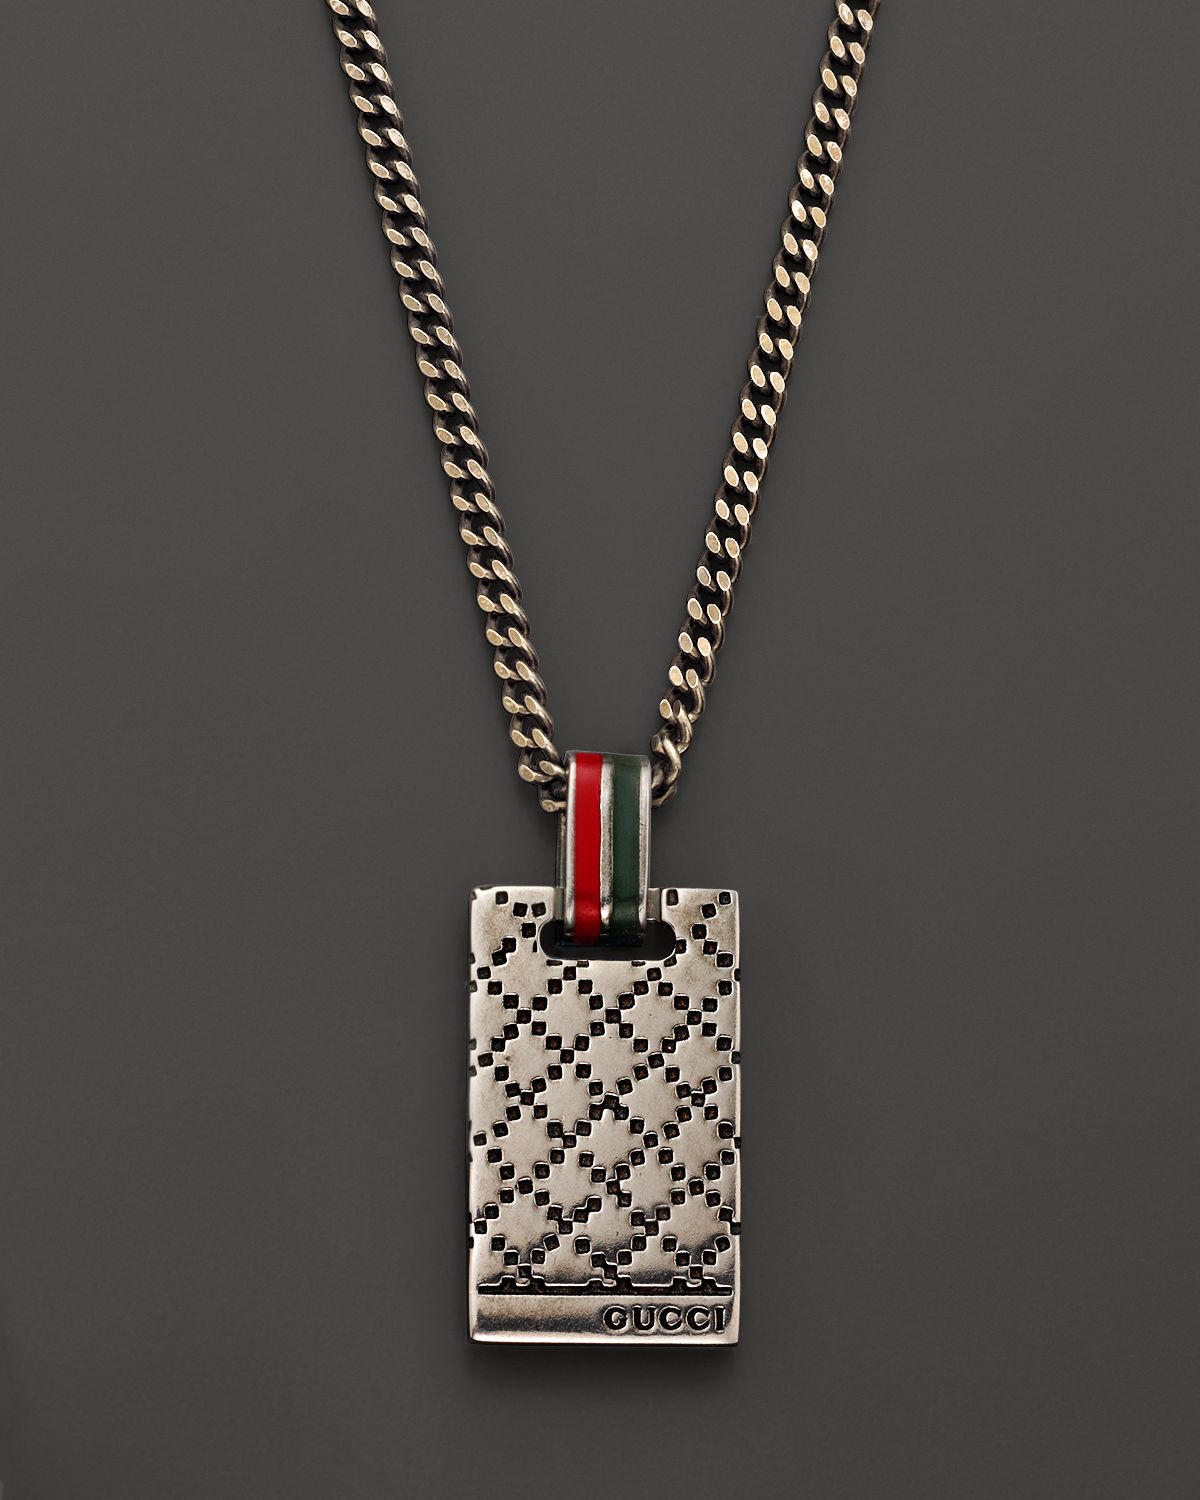 gucci necklace mens. gucci diamante sterling silver pendant necklace 195 in metallic; men mens